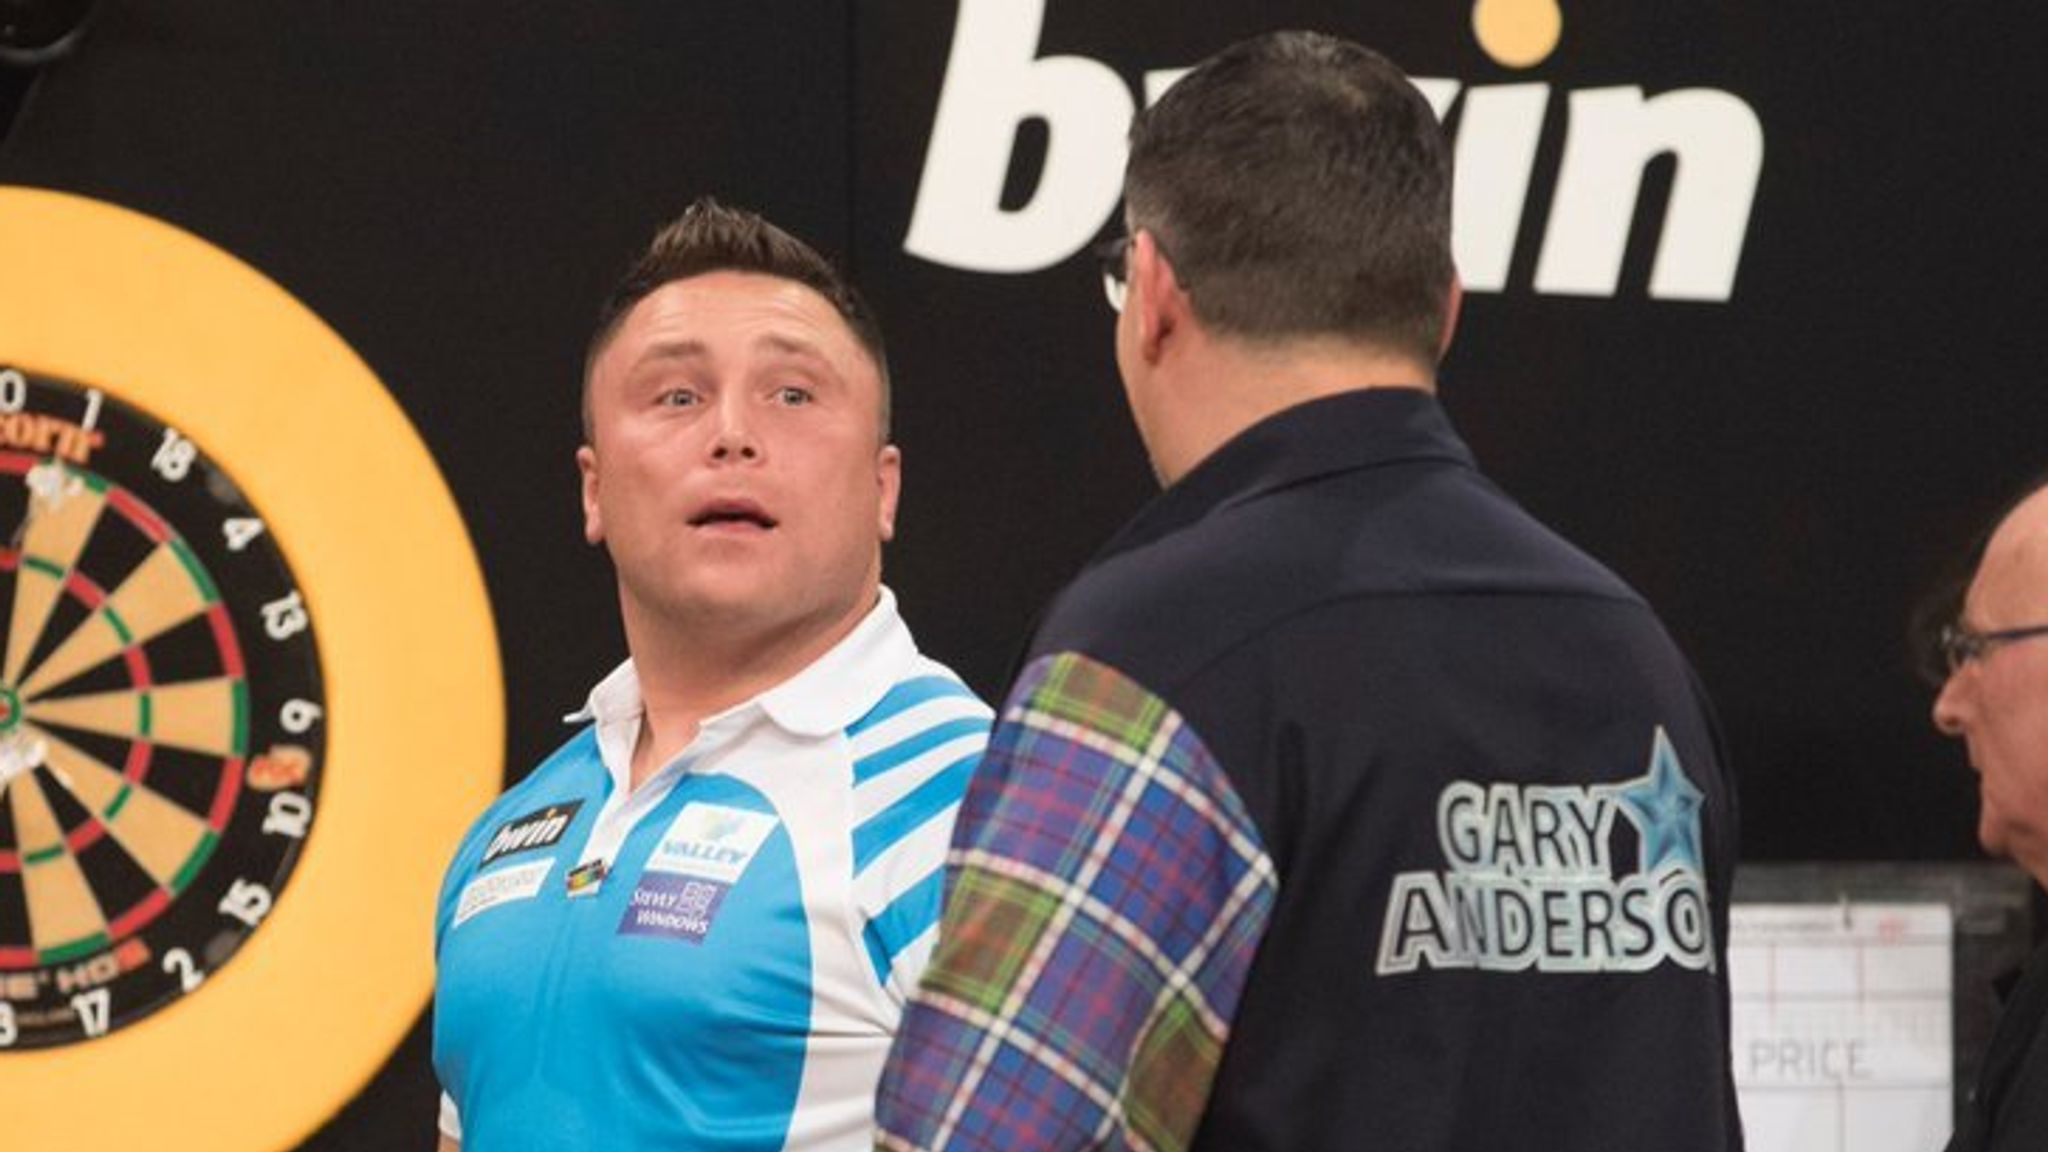 Gerwyn Price vs Gary Anderson: Fireworks expected in Grand Slam rematch